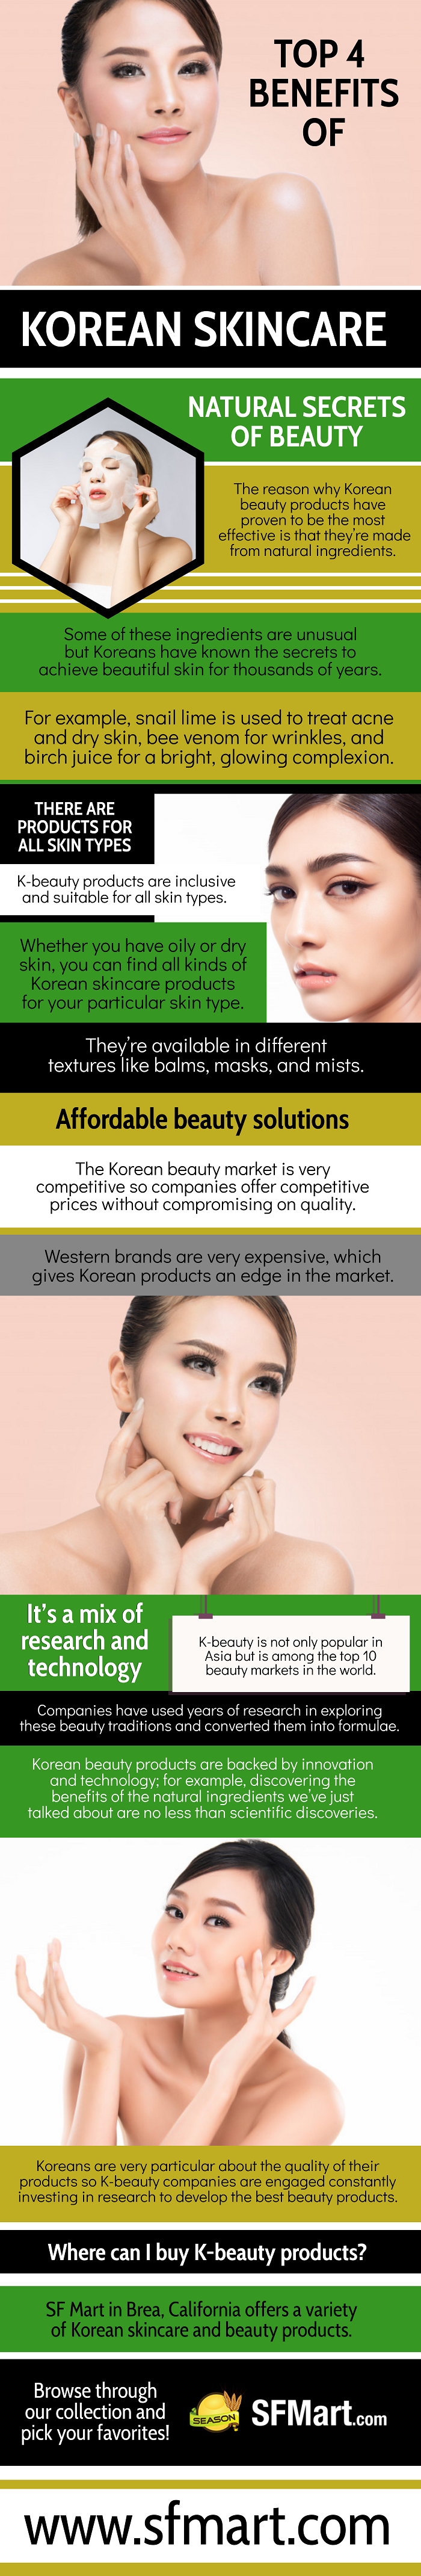 Top 4 Benefits Of Korean SkinCare